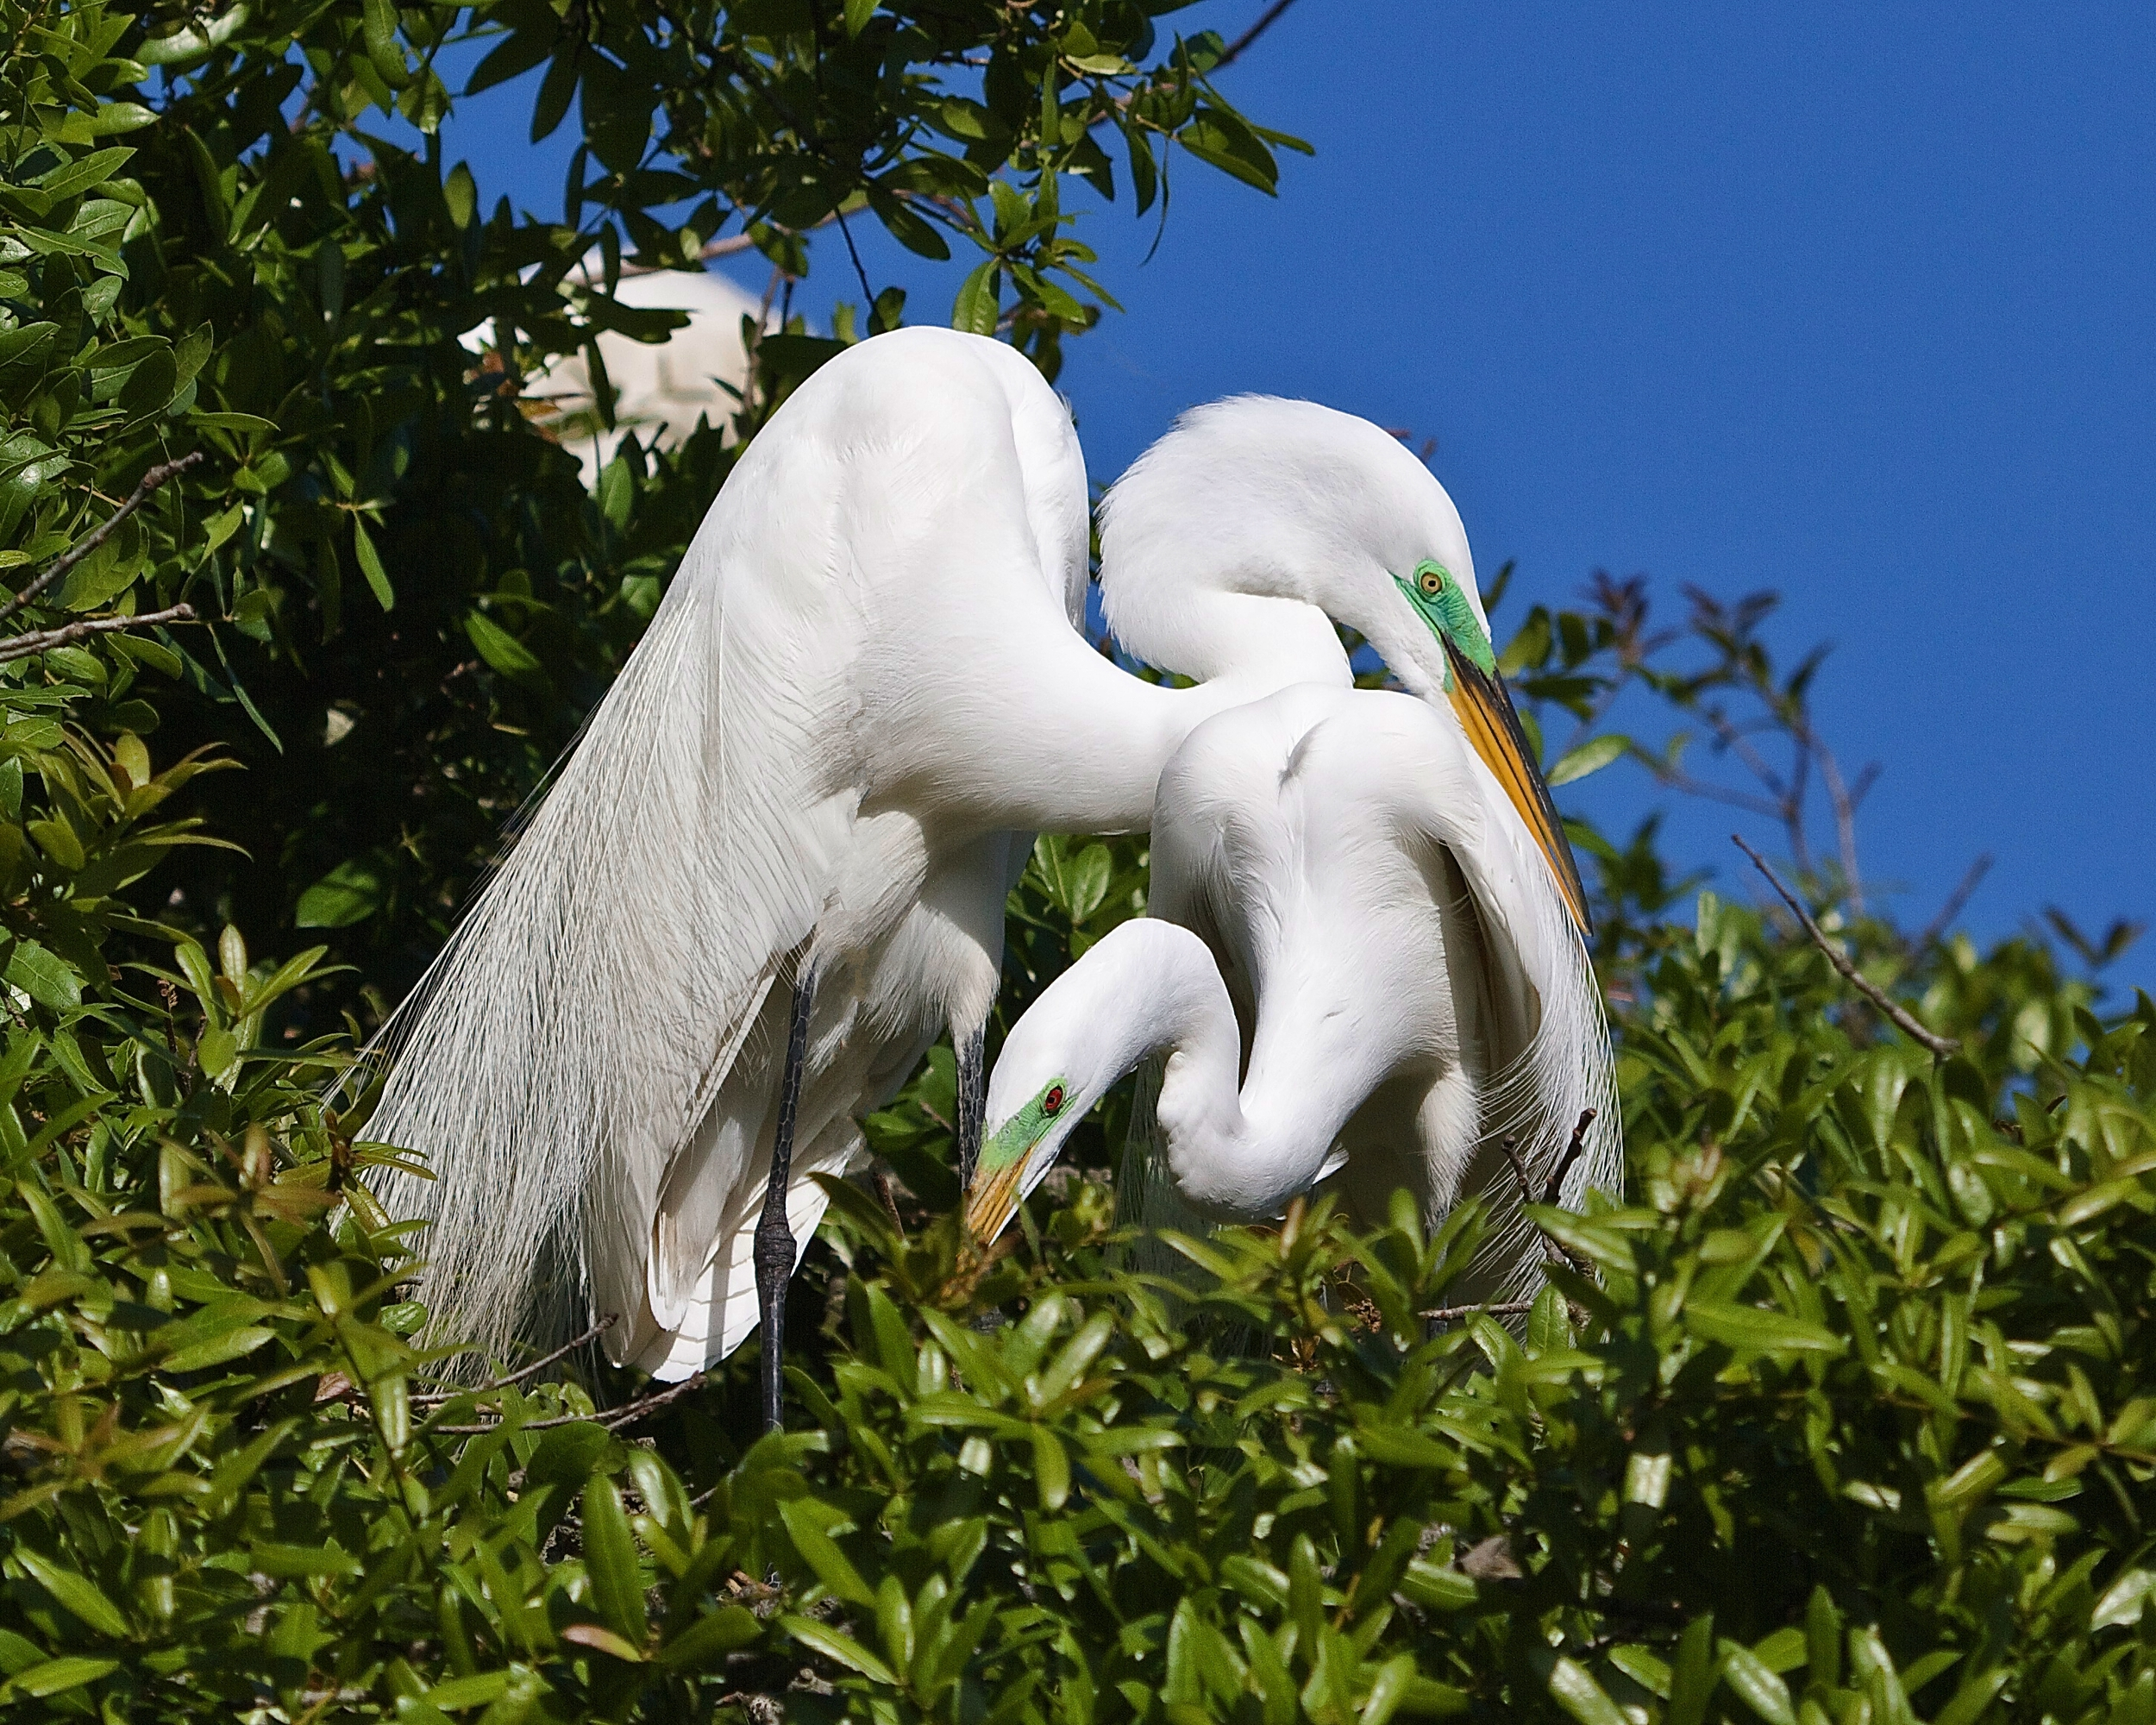 Spring is definitely in the air on the Great Egret Nests